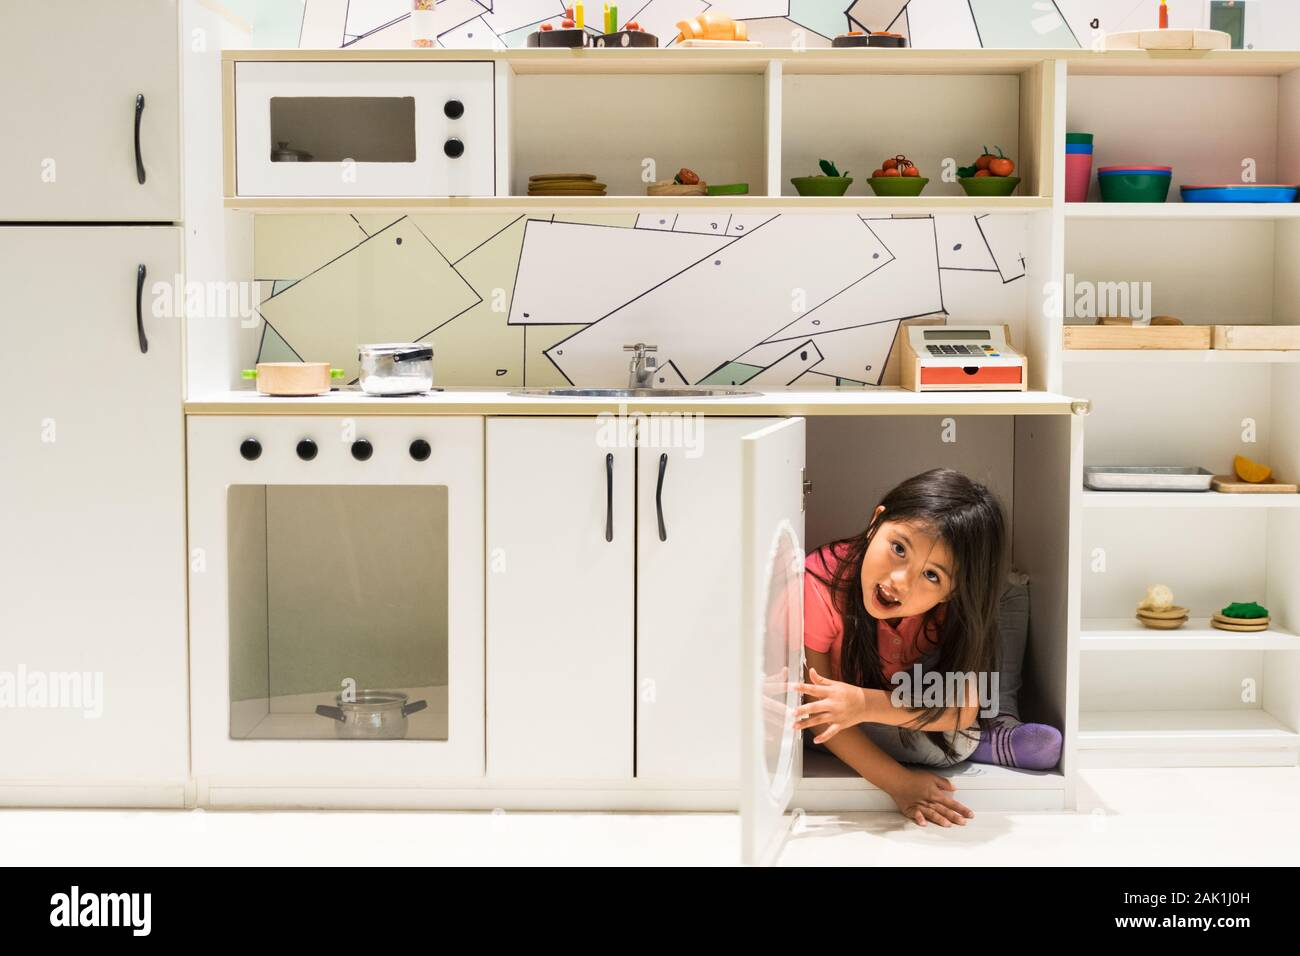 Beautiful girl coming out of the kitchen cupboard for girls Stock Photo